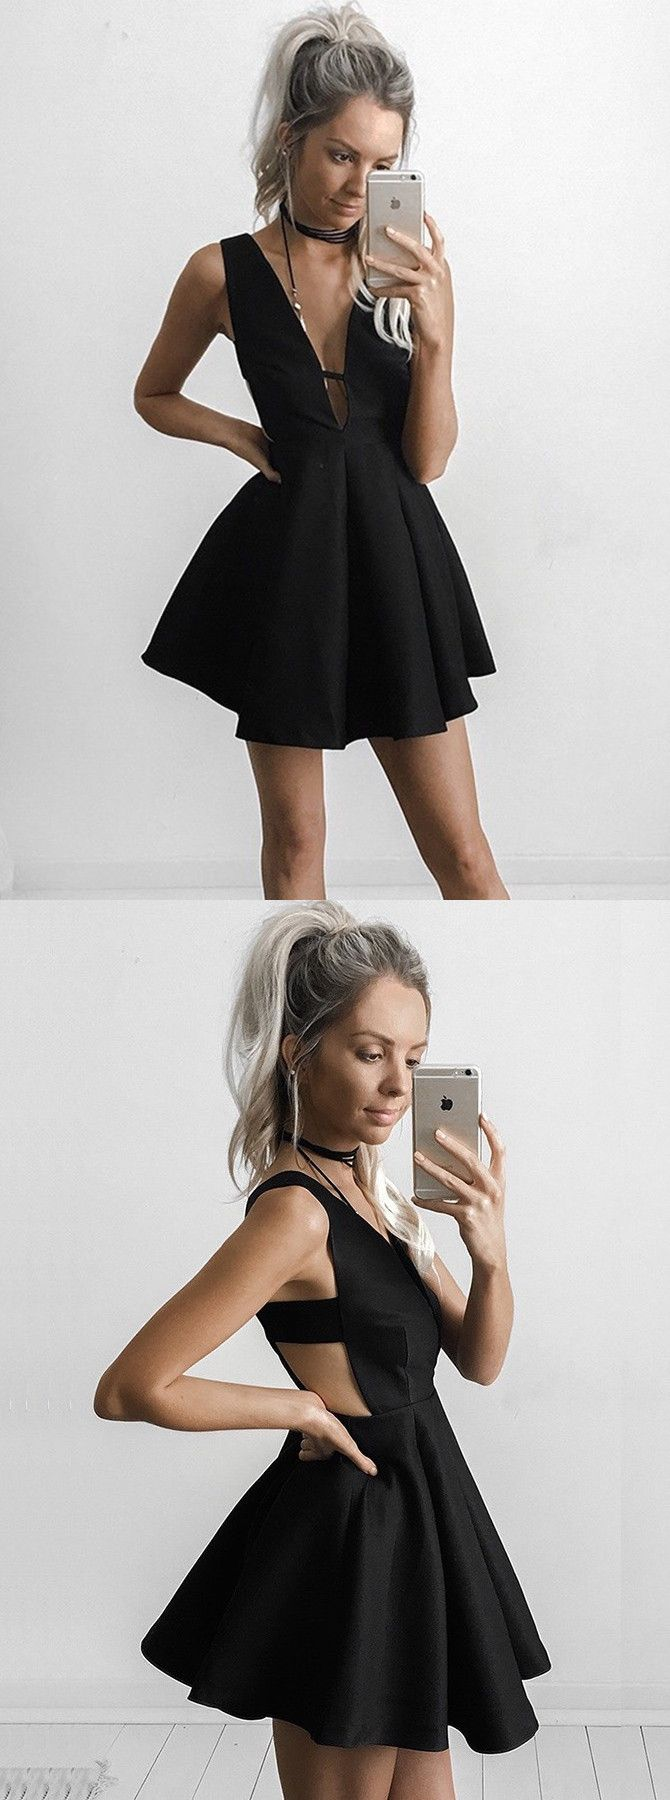 short homecoming dresses,black homecoming dresses,short prom dresses,sexy cocktail dresses